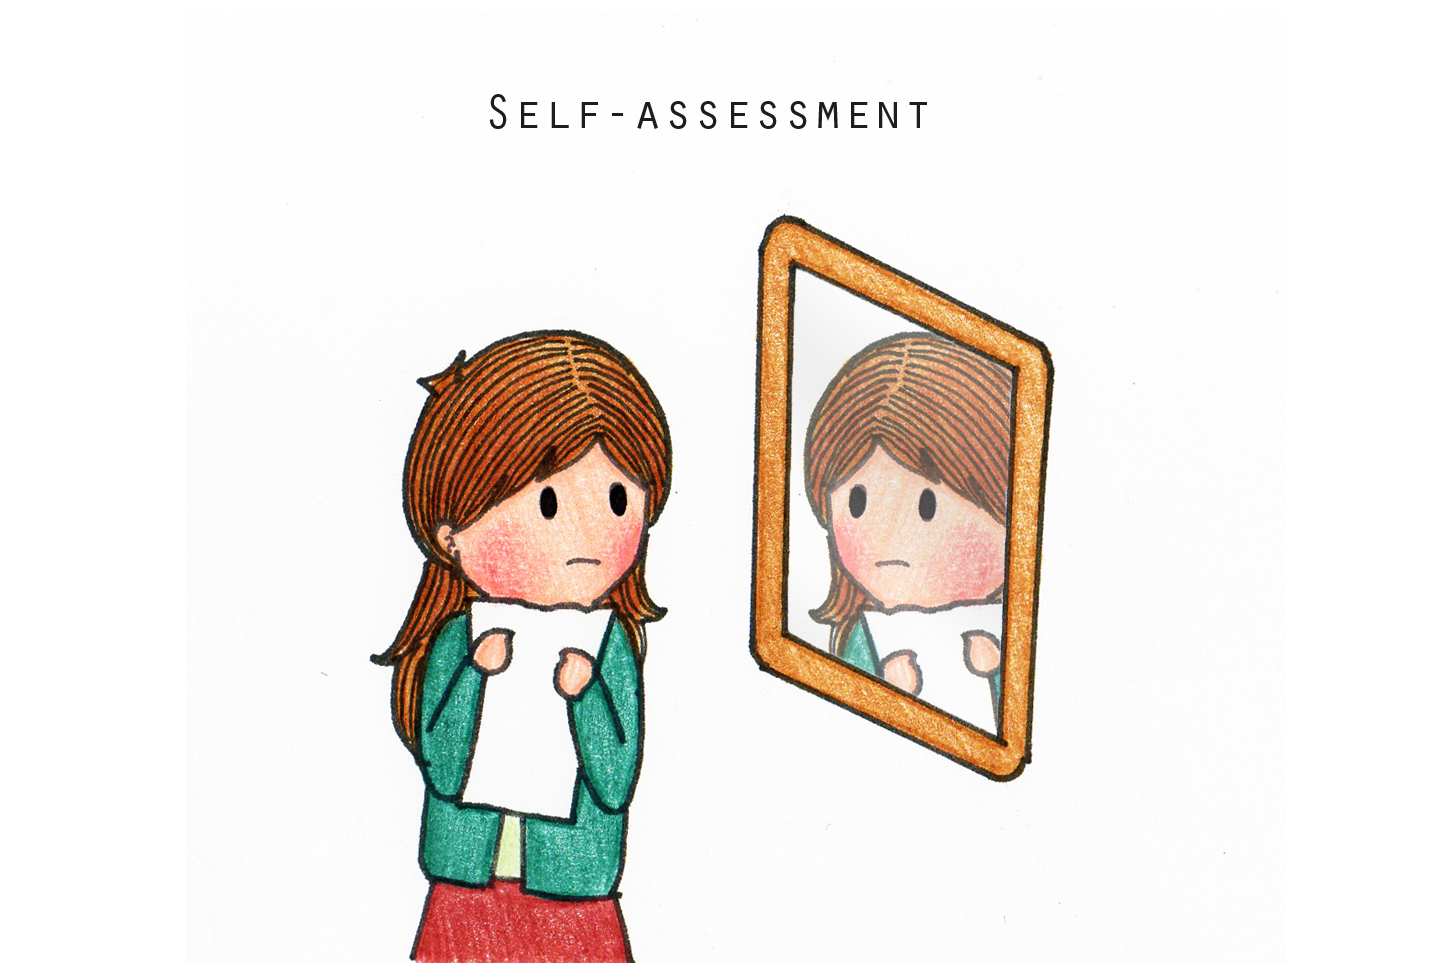 Peer or Self-Assessment? Benefits and Challenges | Richard